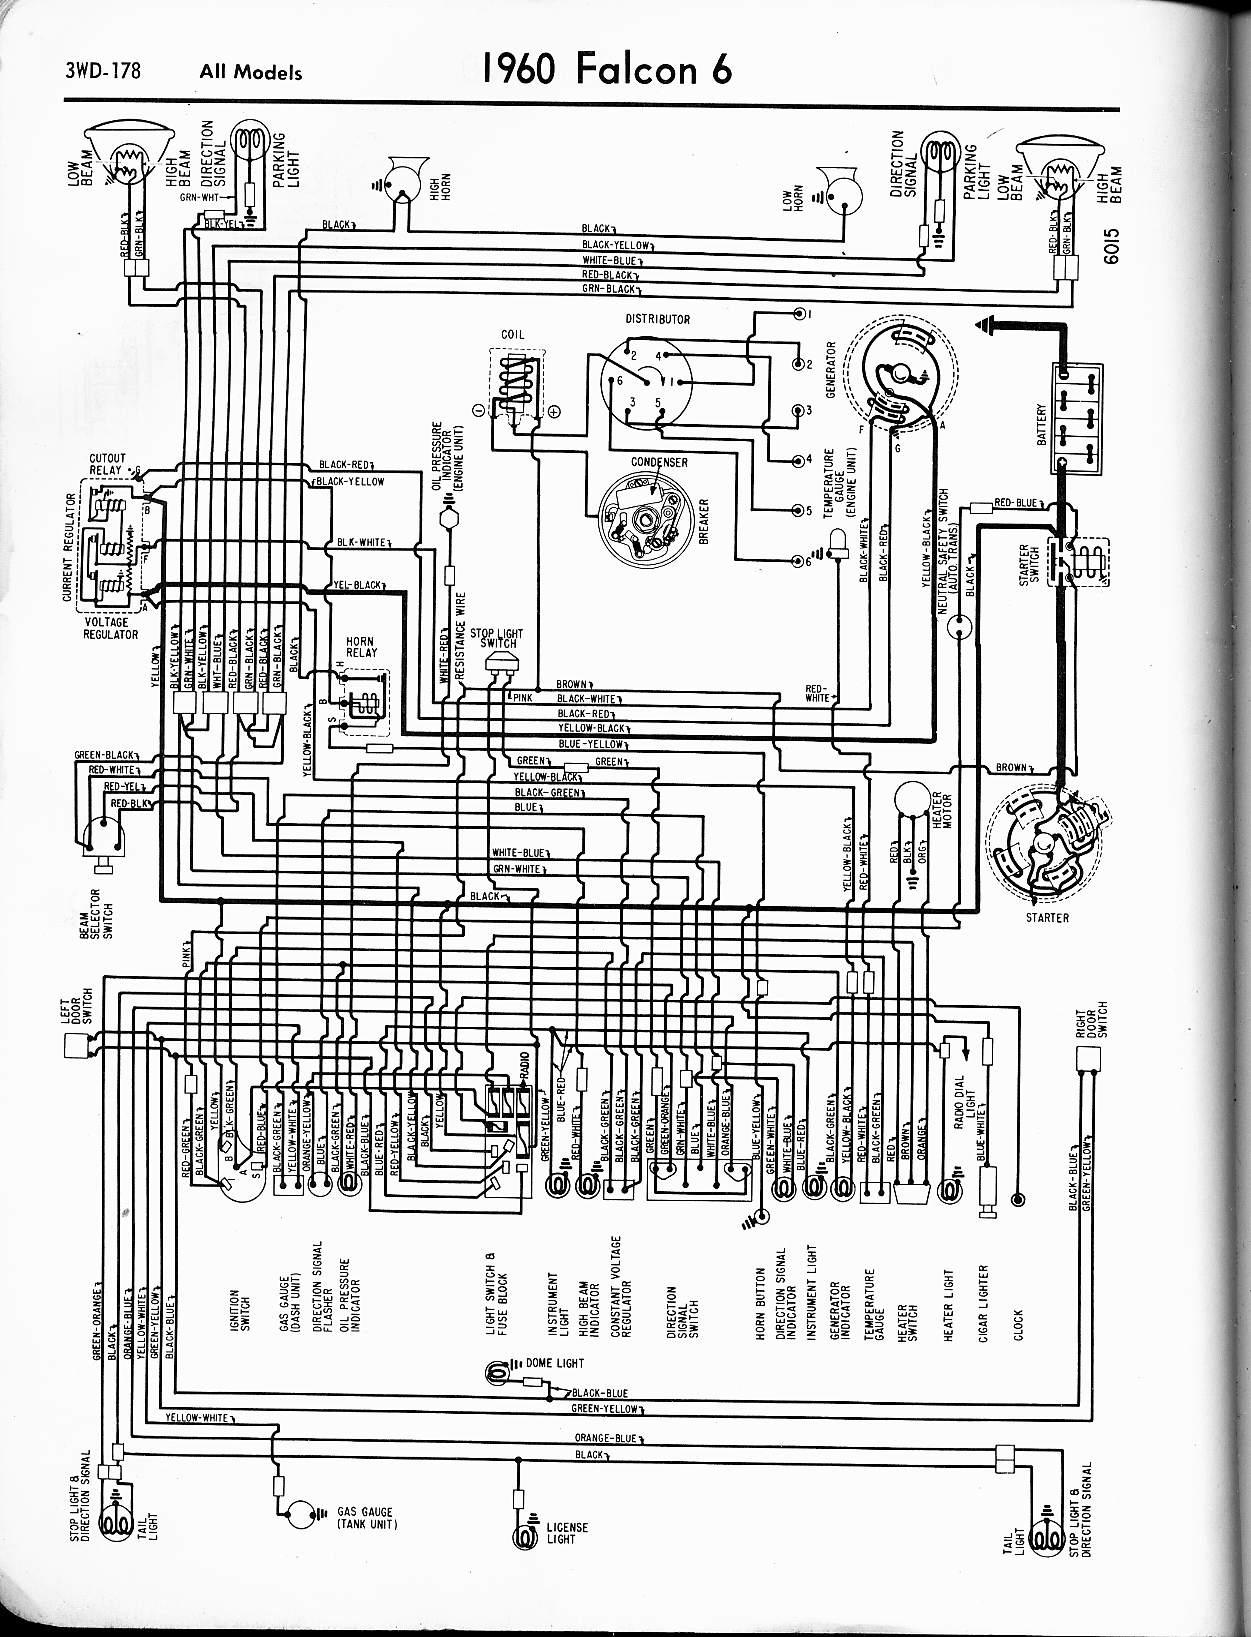 hight resolution of wiring diagram ford galaxy 2001 wiring diagram weekwiring diagram ford galaxy 2001 wiring diagrams konsult wiring